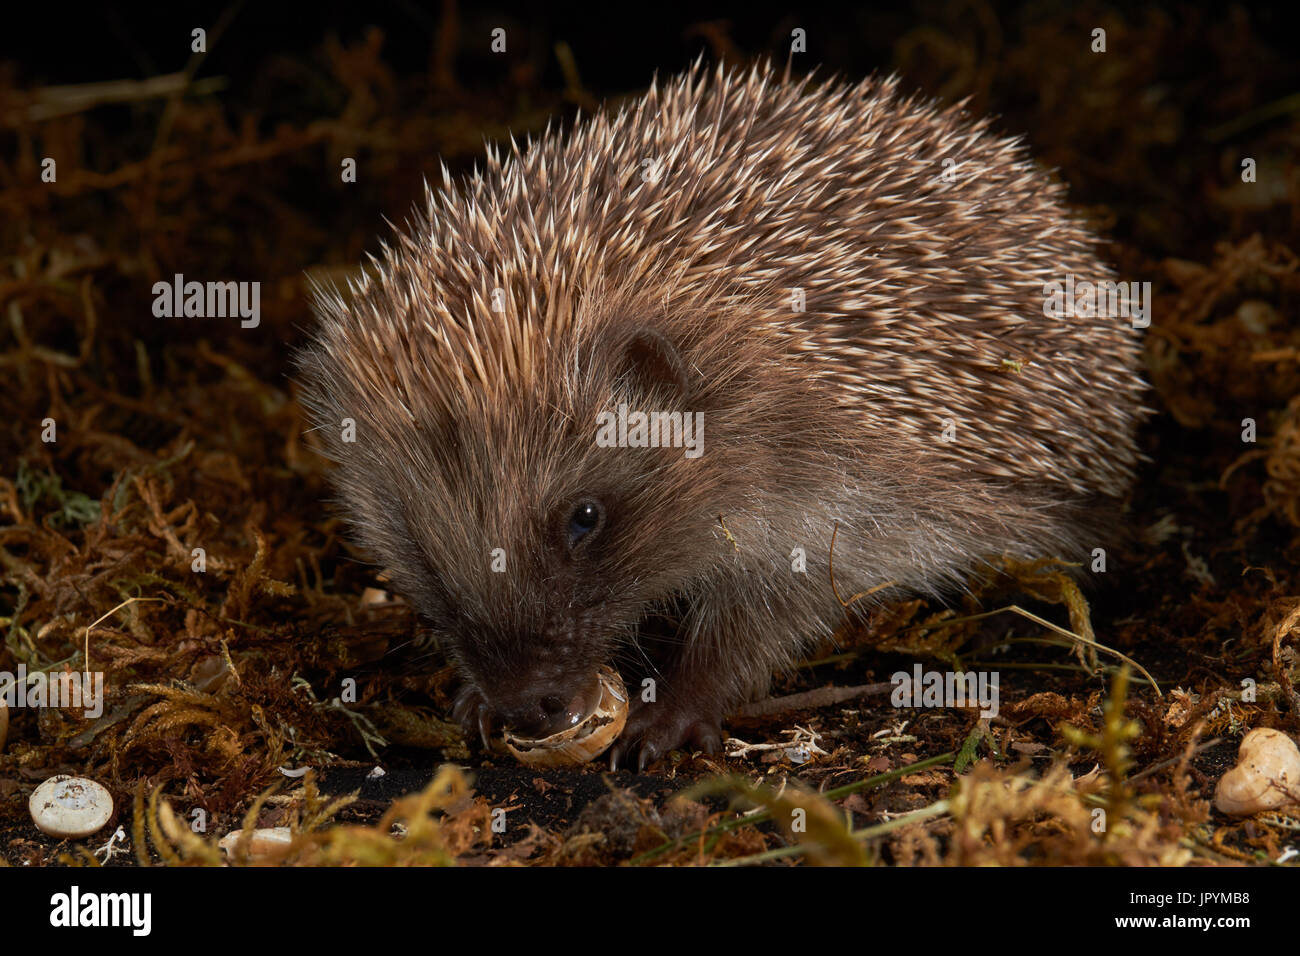 Western European hedgehog eating a snail - France - Stock Image